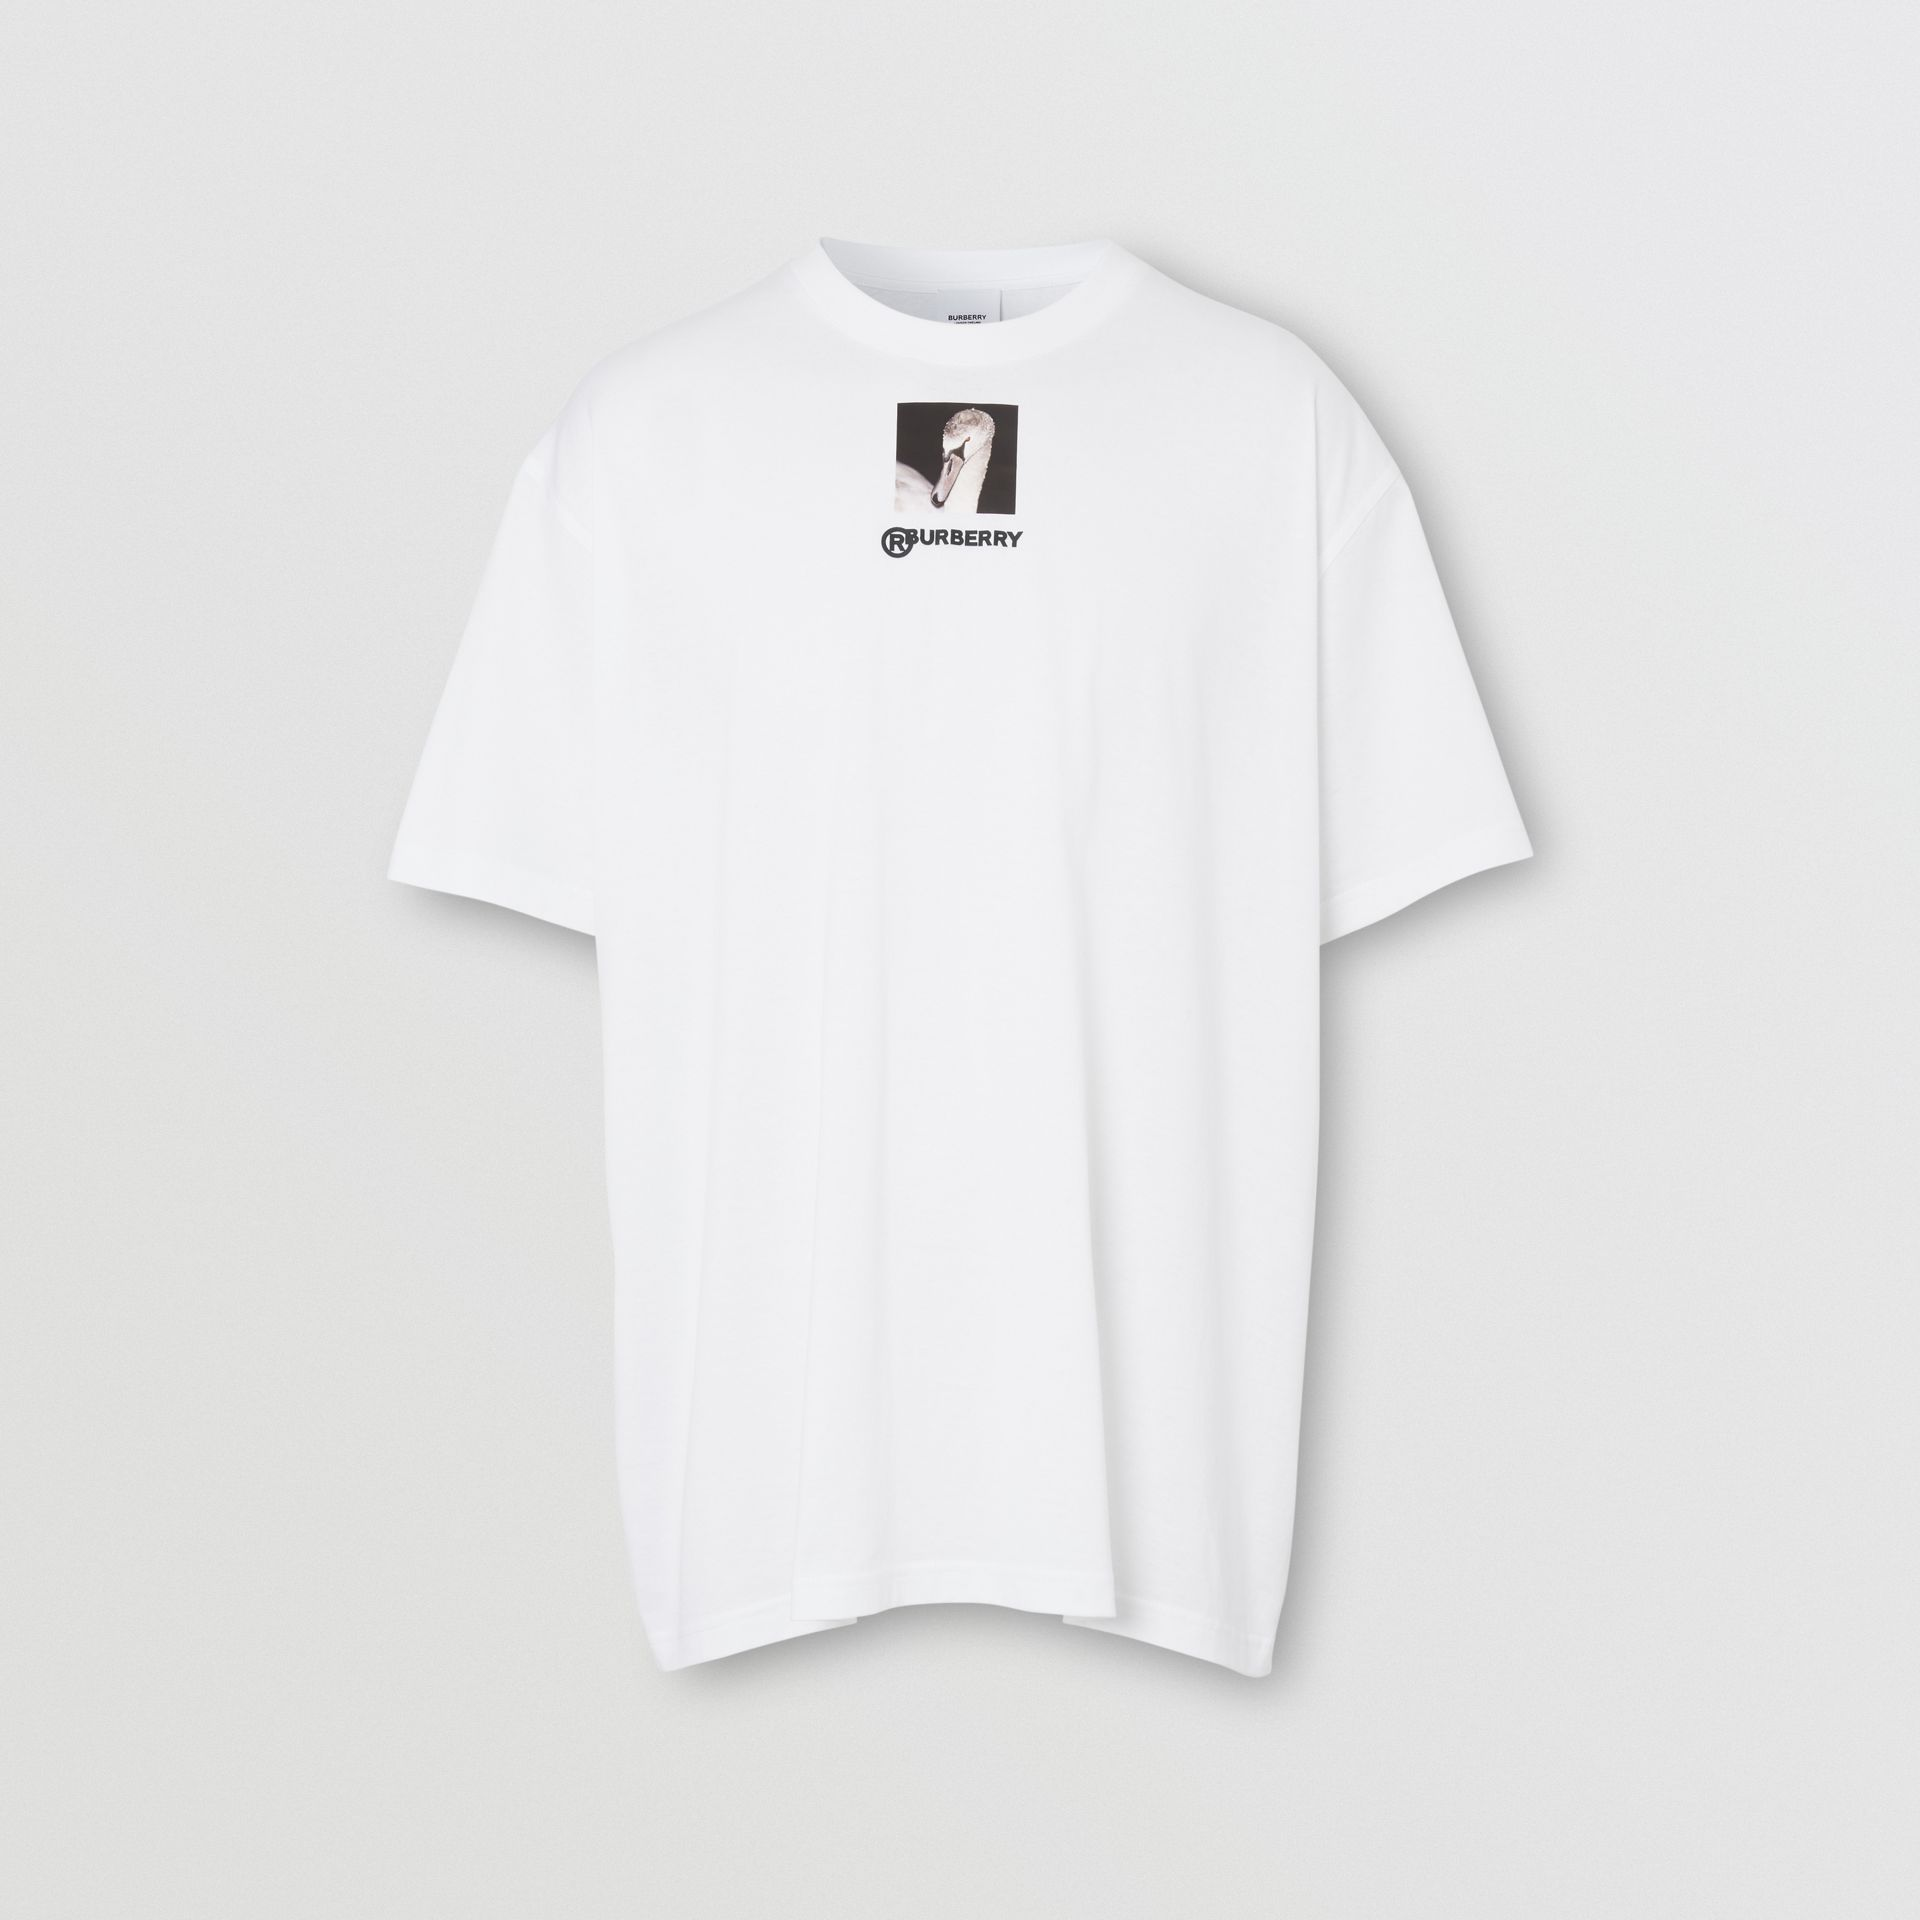 Swan and Logo Print Cotton Oversized T-shirt in Optic White | Burberry United Kingdom - gallery image 3